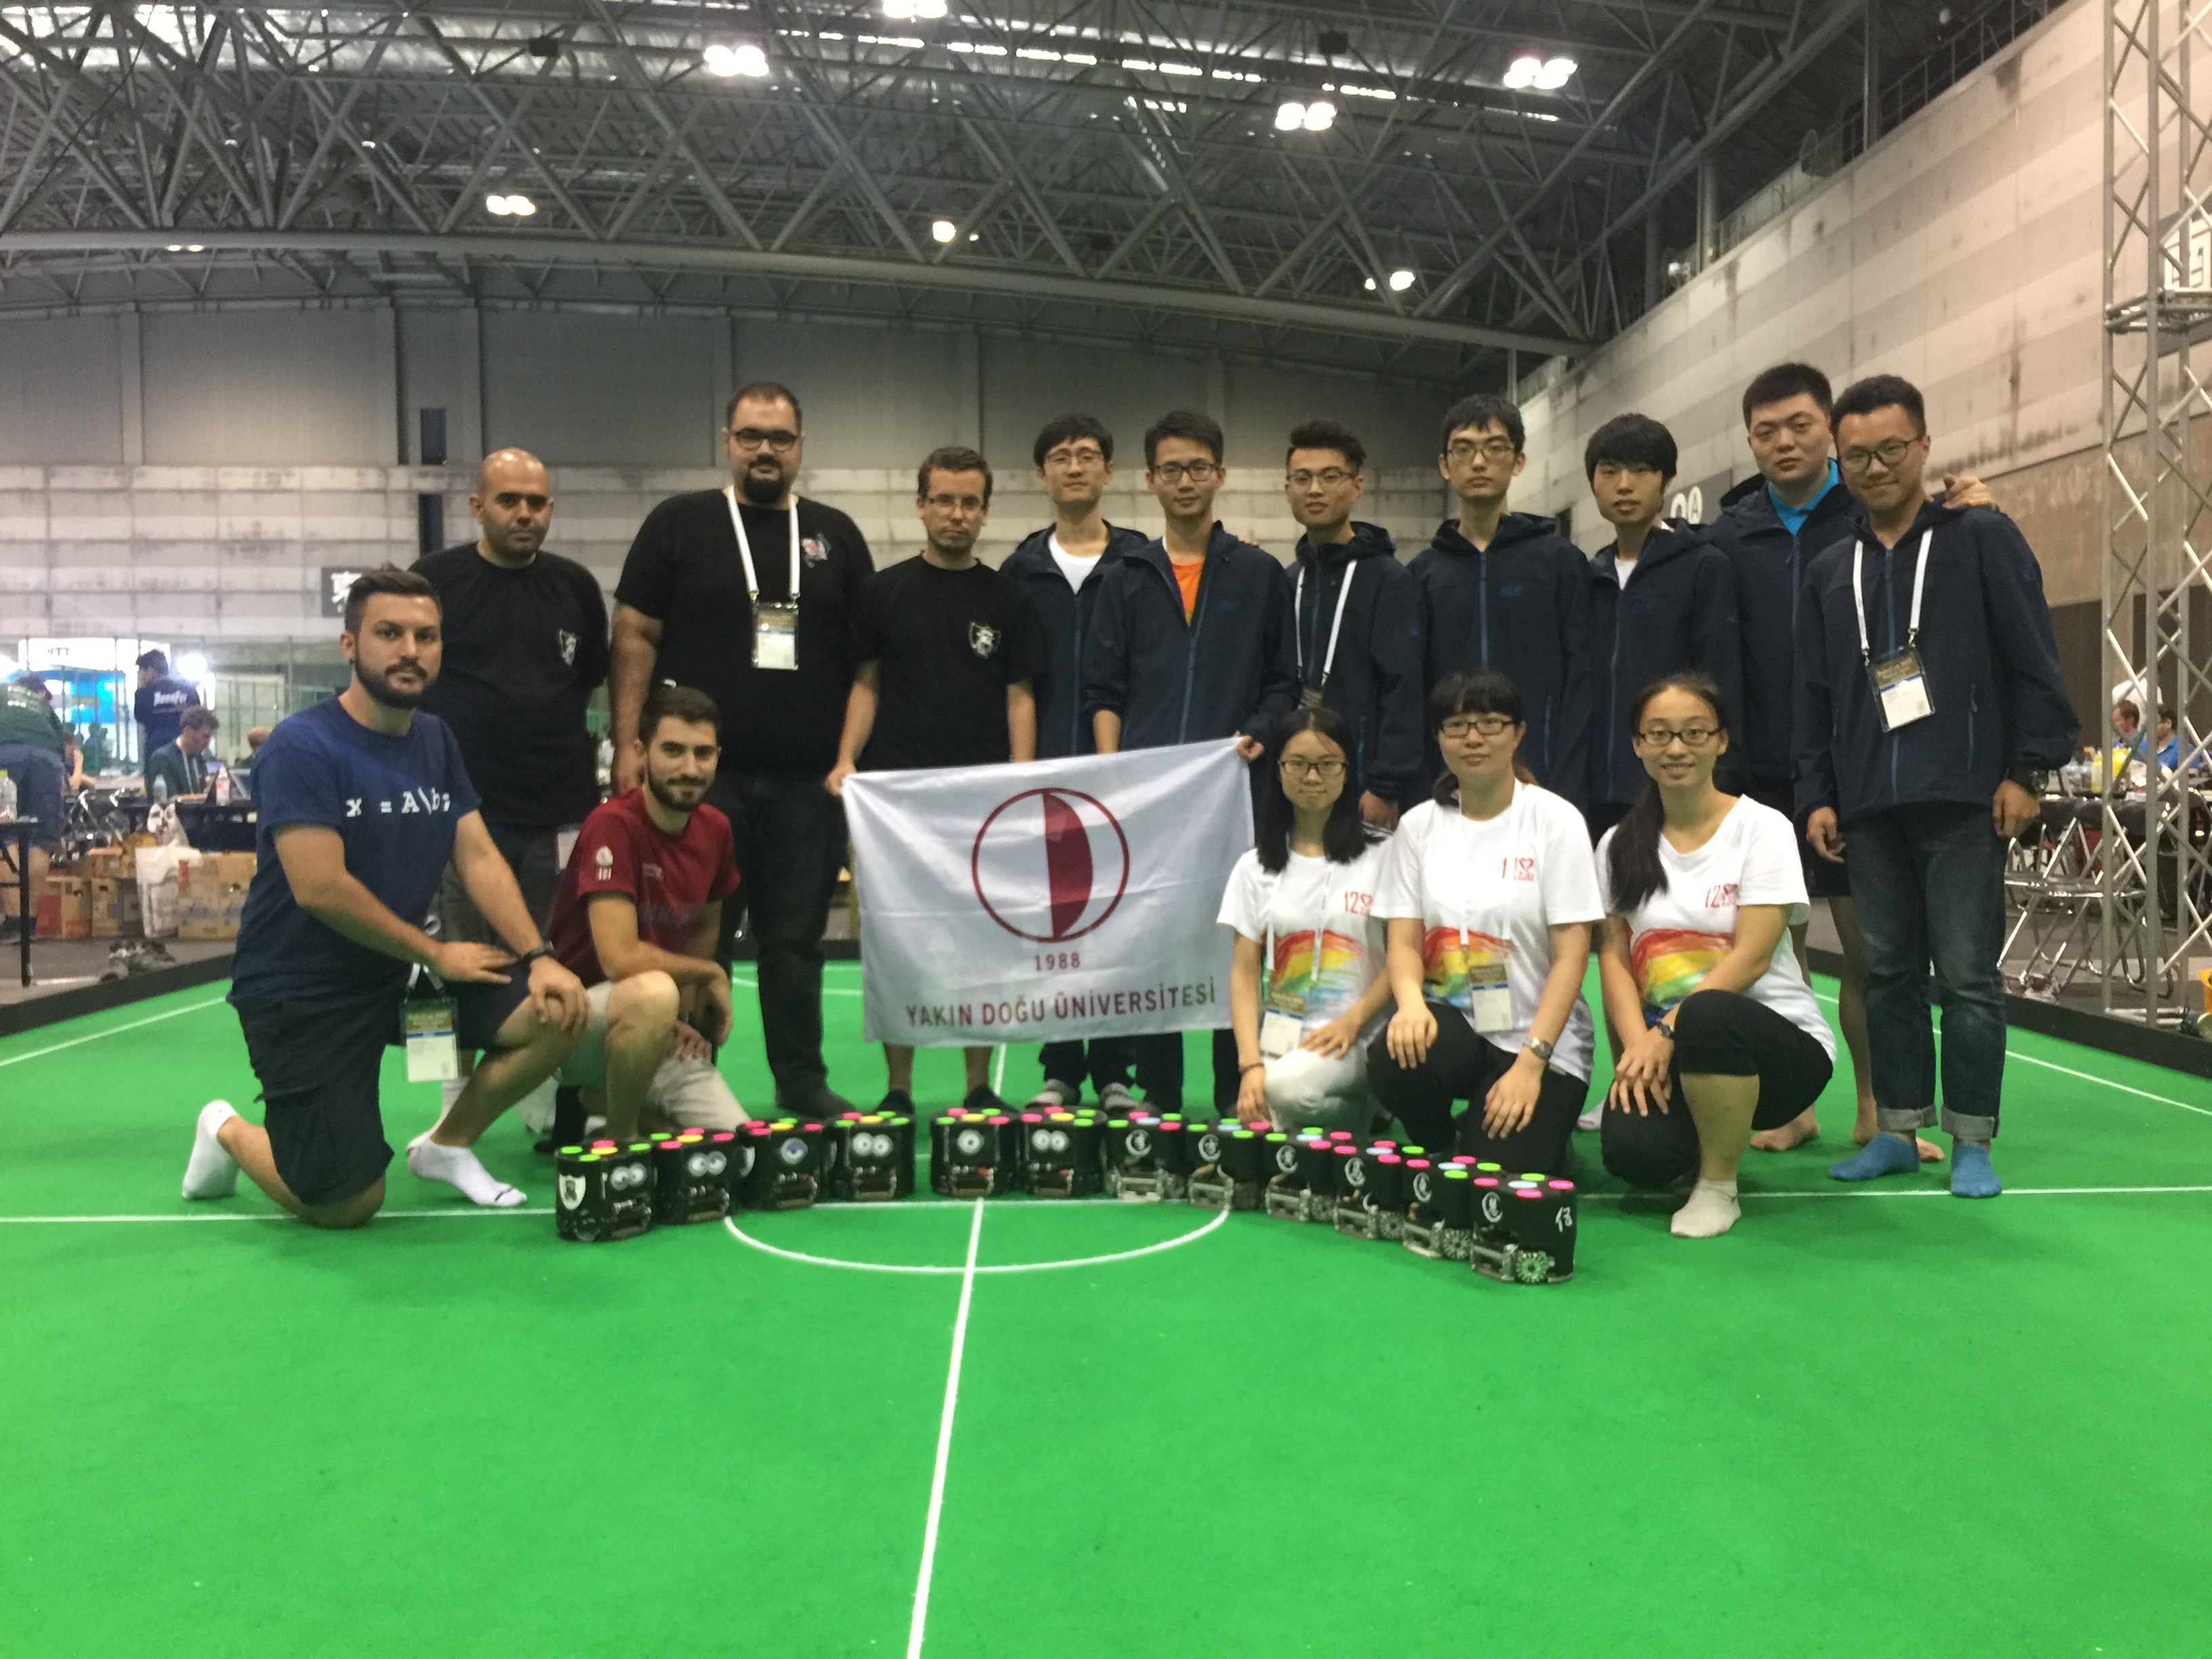 NeuIslanders Robotic Soccer Team promoted to a higher tour in the world cup